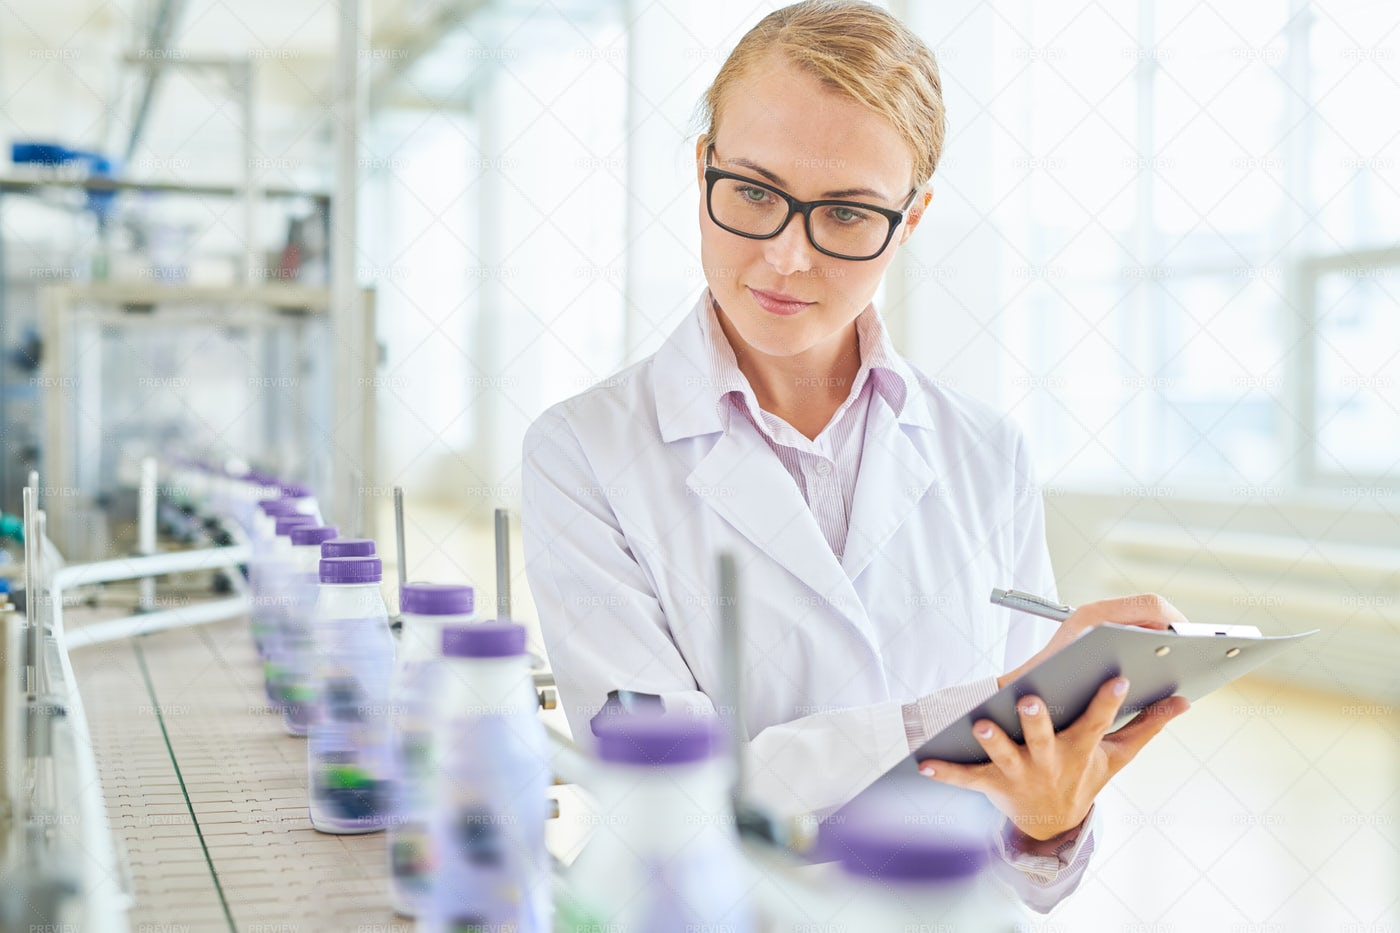 Pretty Technologist Wrapped Up In...: Stock Photos